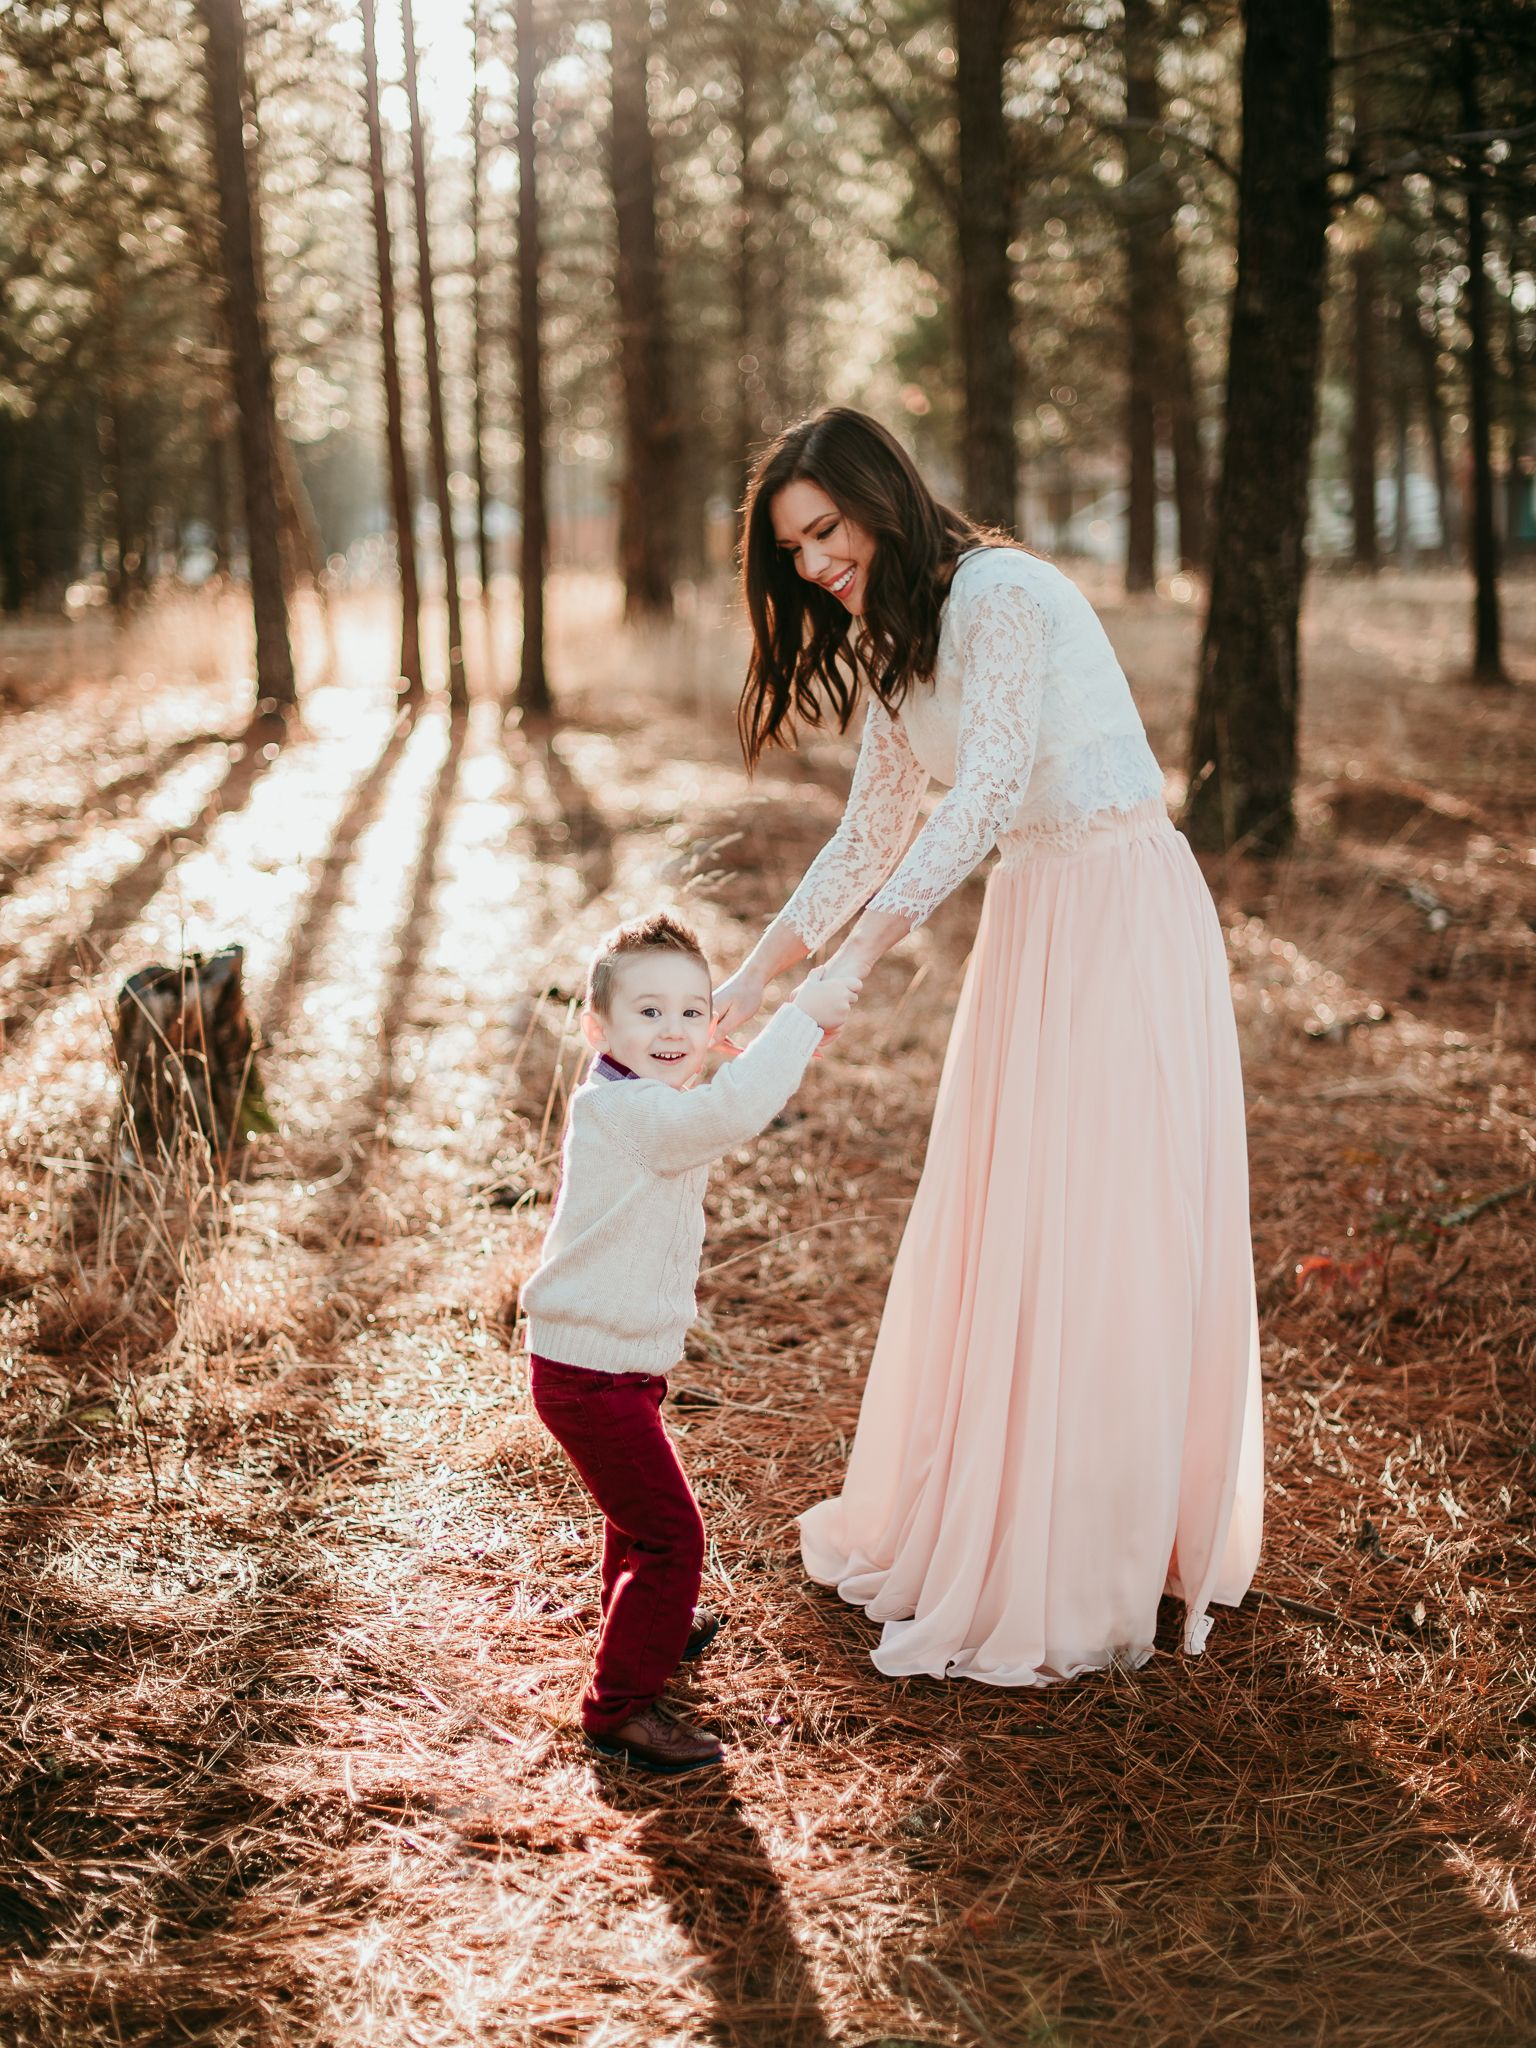 Mother And Son Dancing In The Woods During Golden Hour Spokane Valley Washingt Mommy And Me Photo Shoot Lifestyle Photography Family Mom Daughter Photography